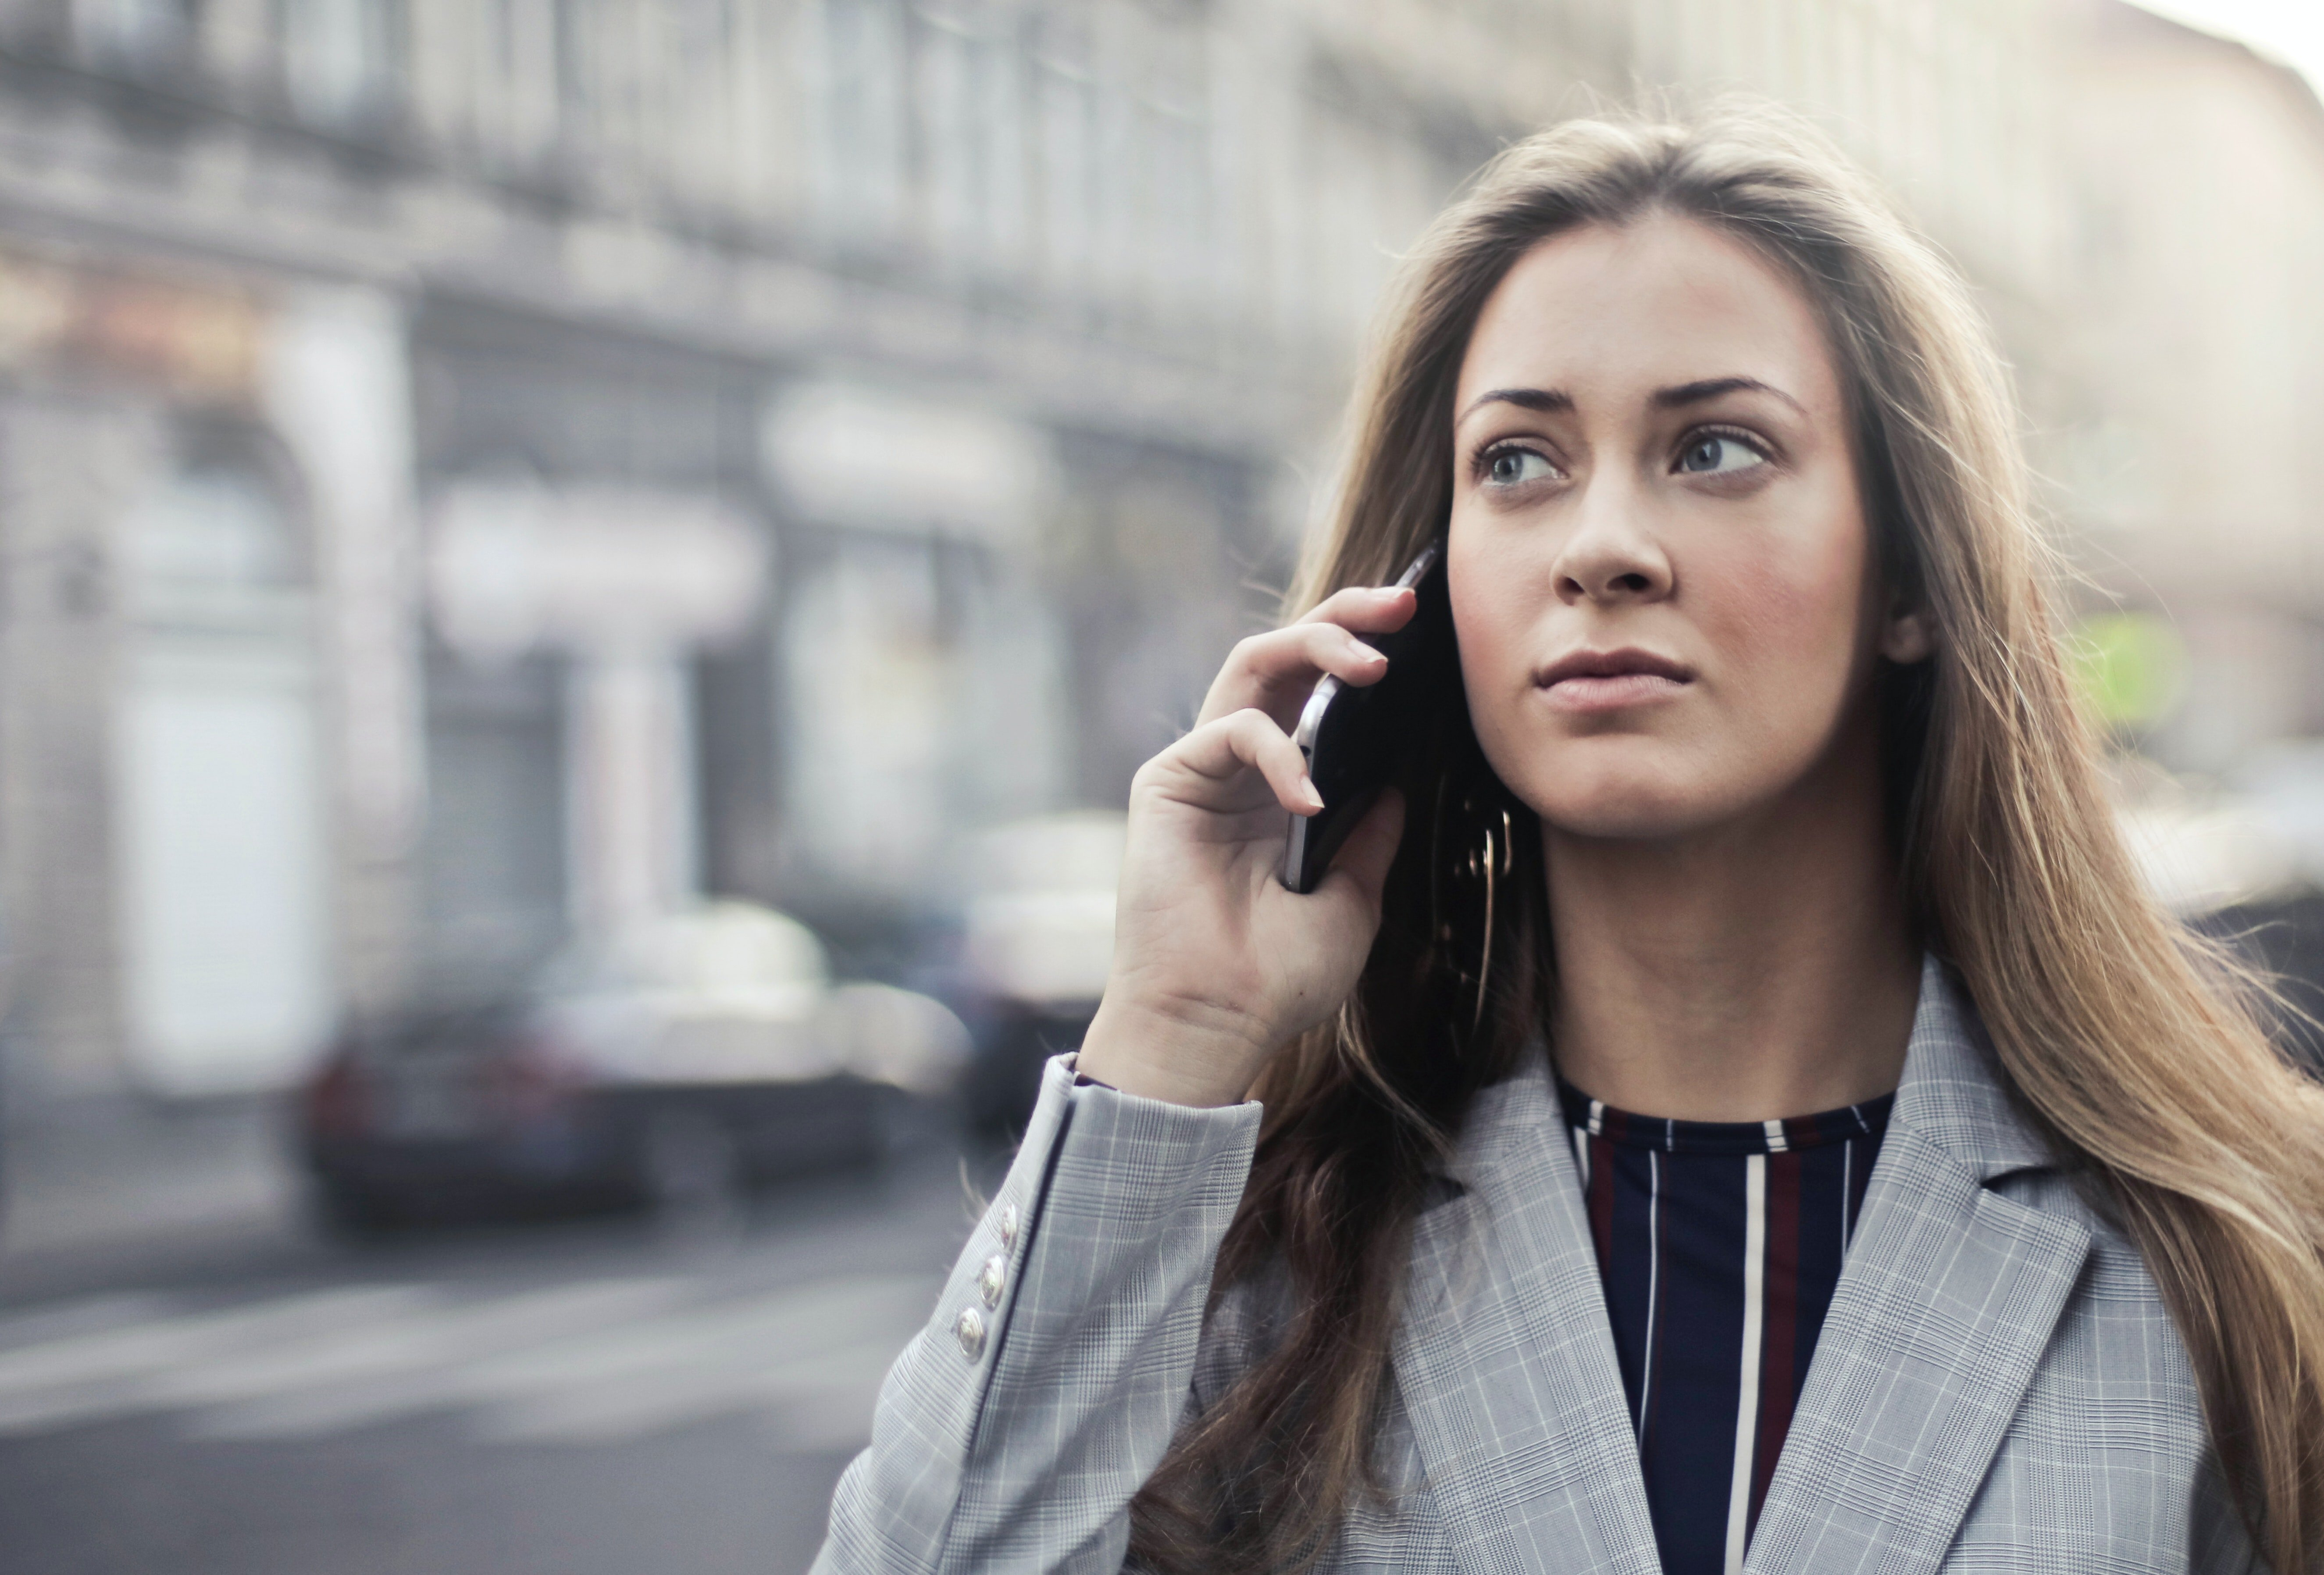 Nessa got a call from the hospital that a drunk cyclist had been hit by a car   Source: Pexels